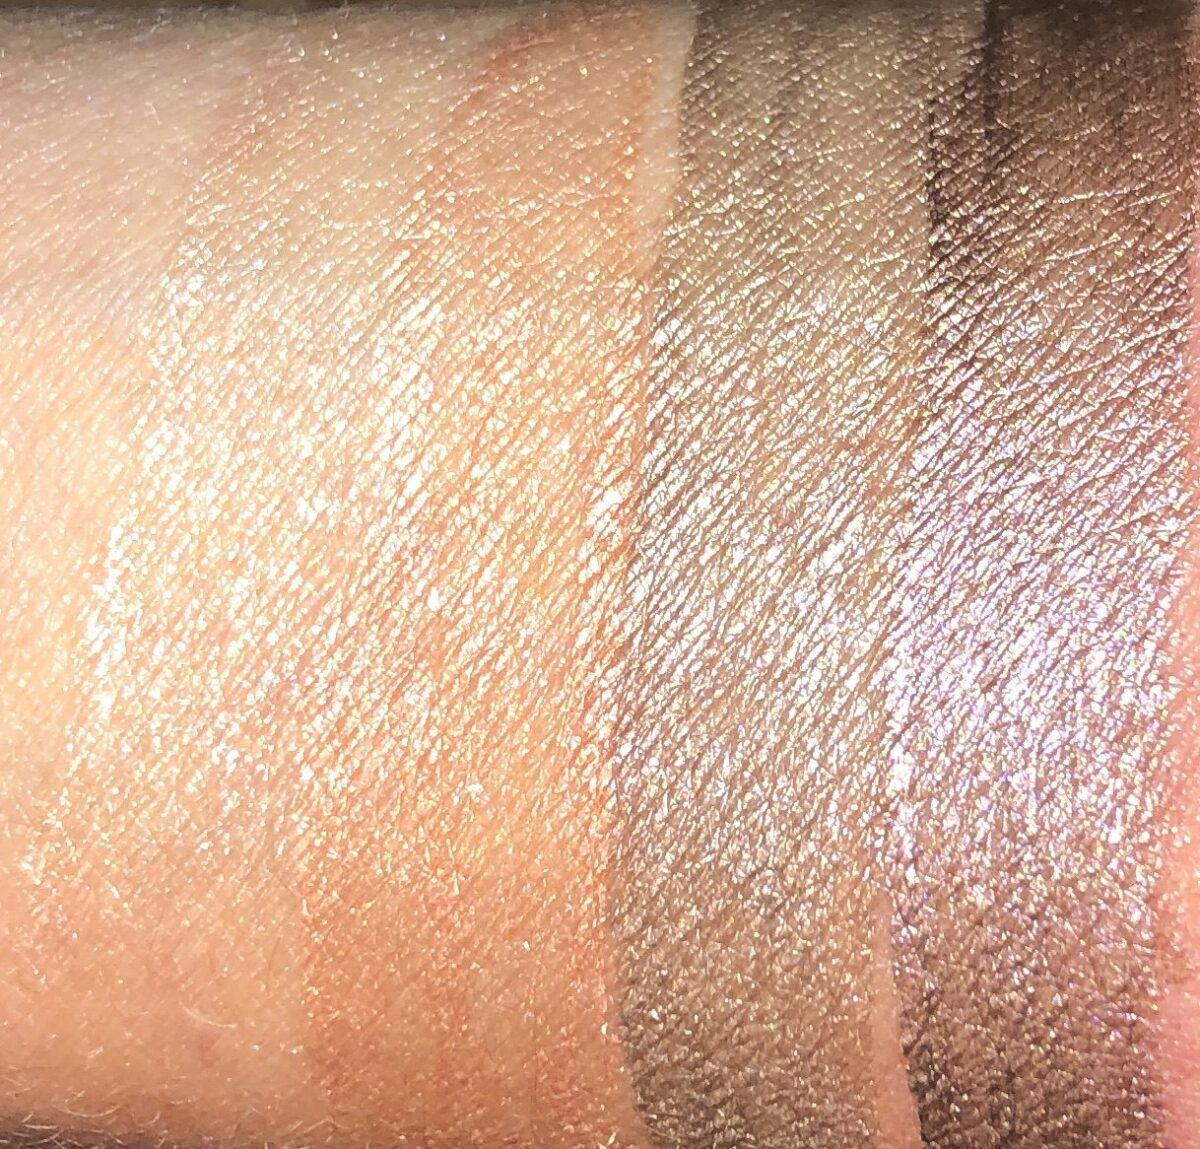 MORE SWATCHES L TO R:  RAYON, RISING SUN, DESERT WIND, AND VASTNESS